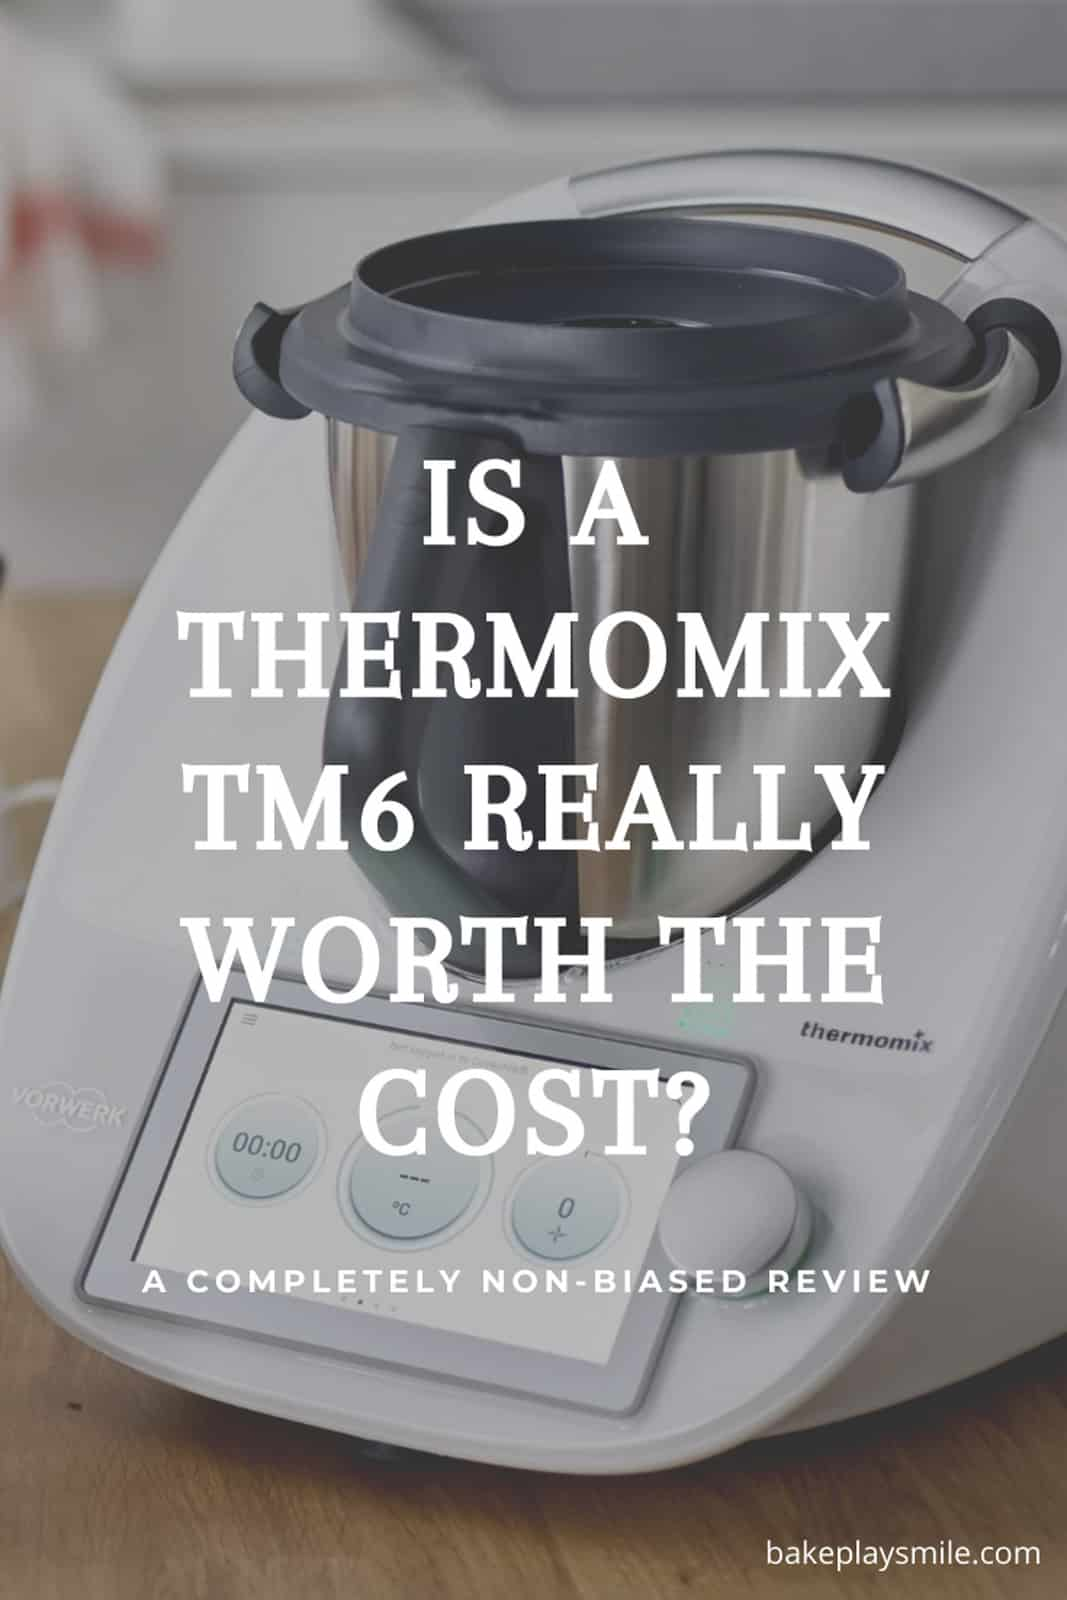 A photo of a Thermomix TM6 model with the text overlay 'Is A Thermomix TM6 really worth the cost?'